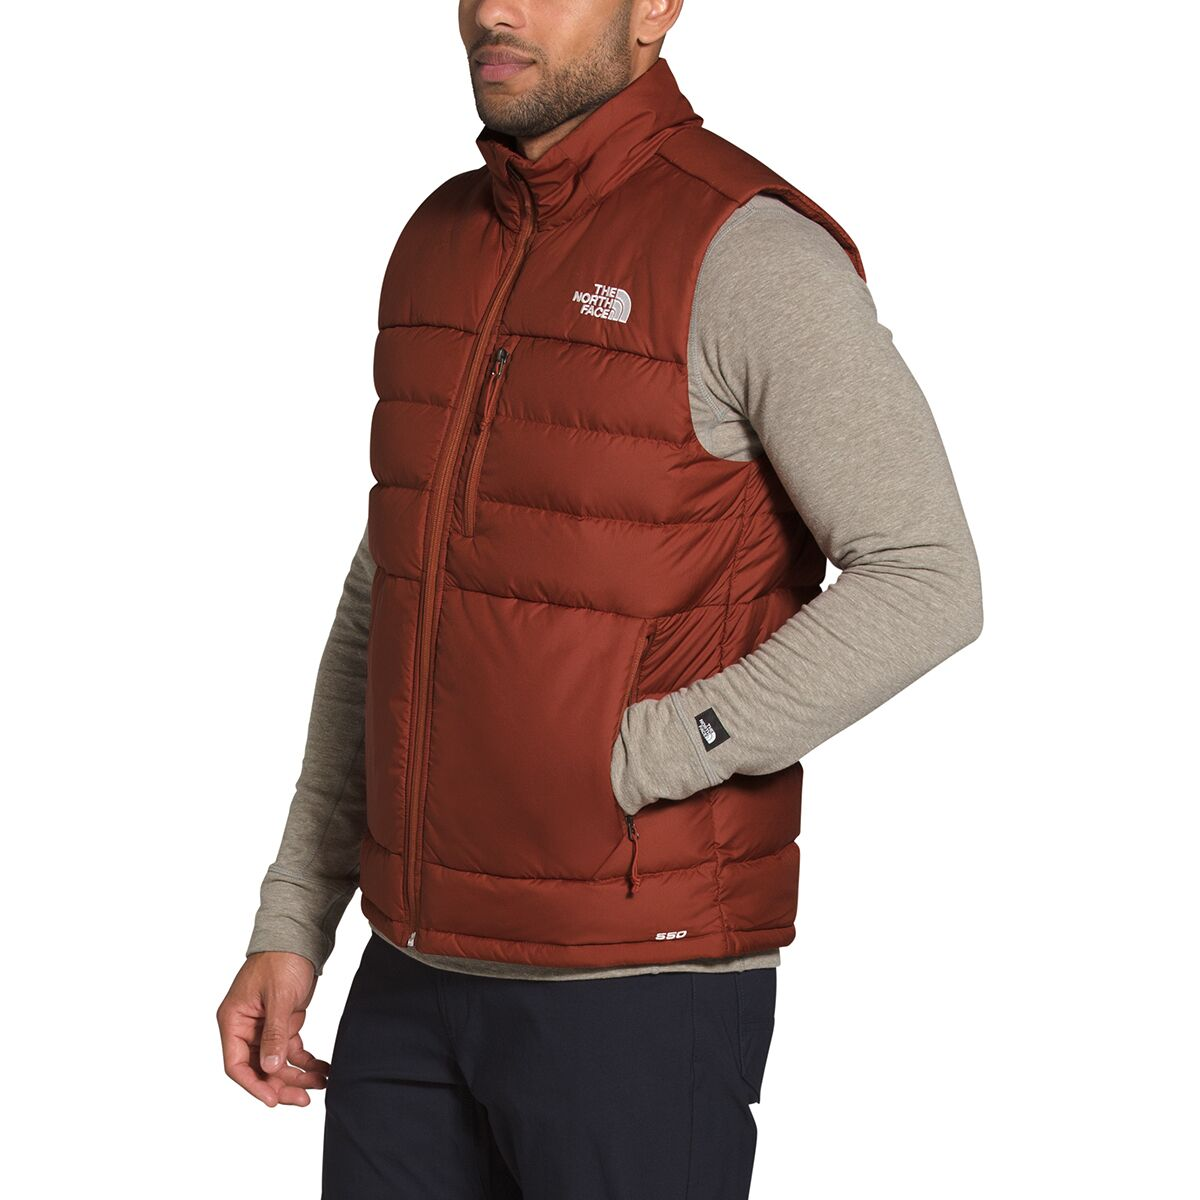 Mens down vest north face forex option signal